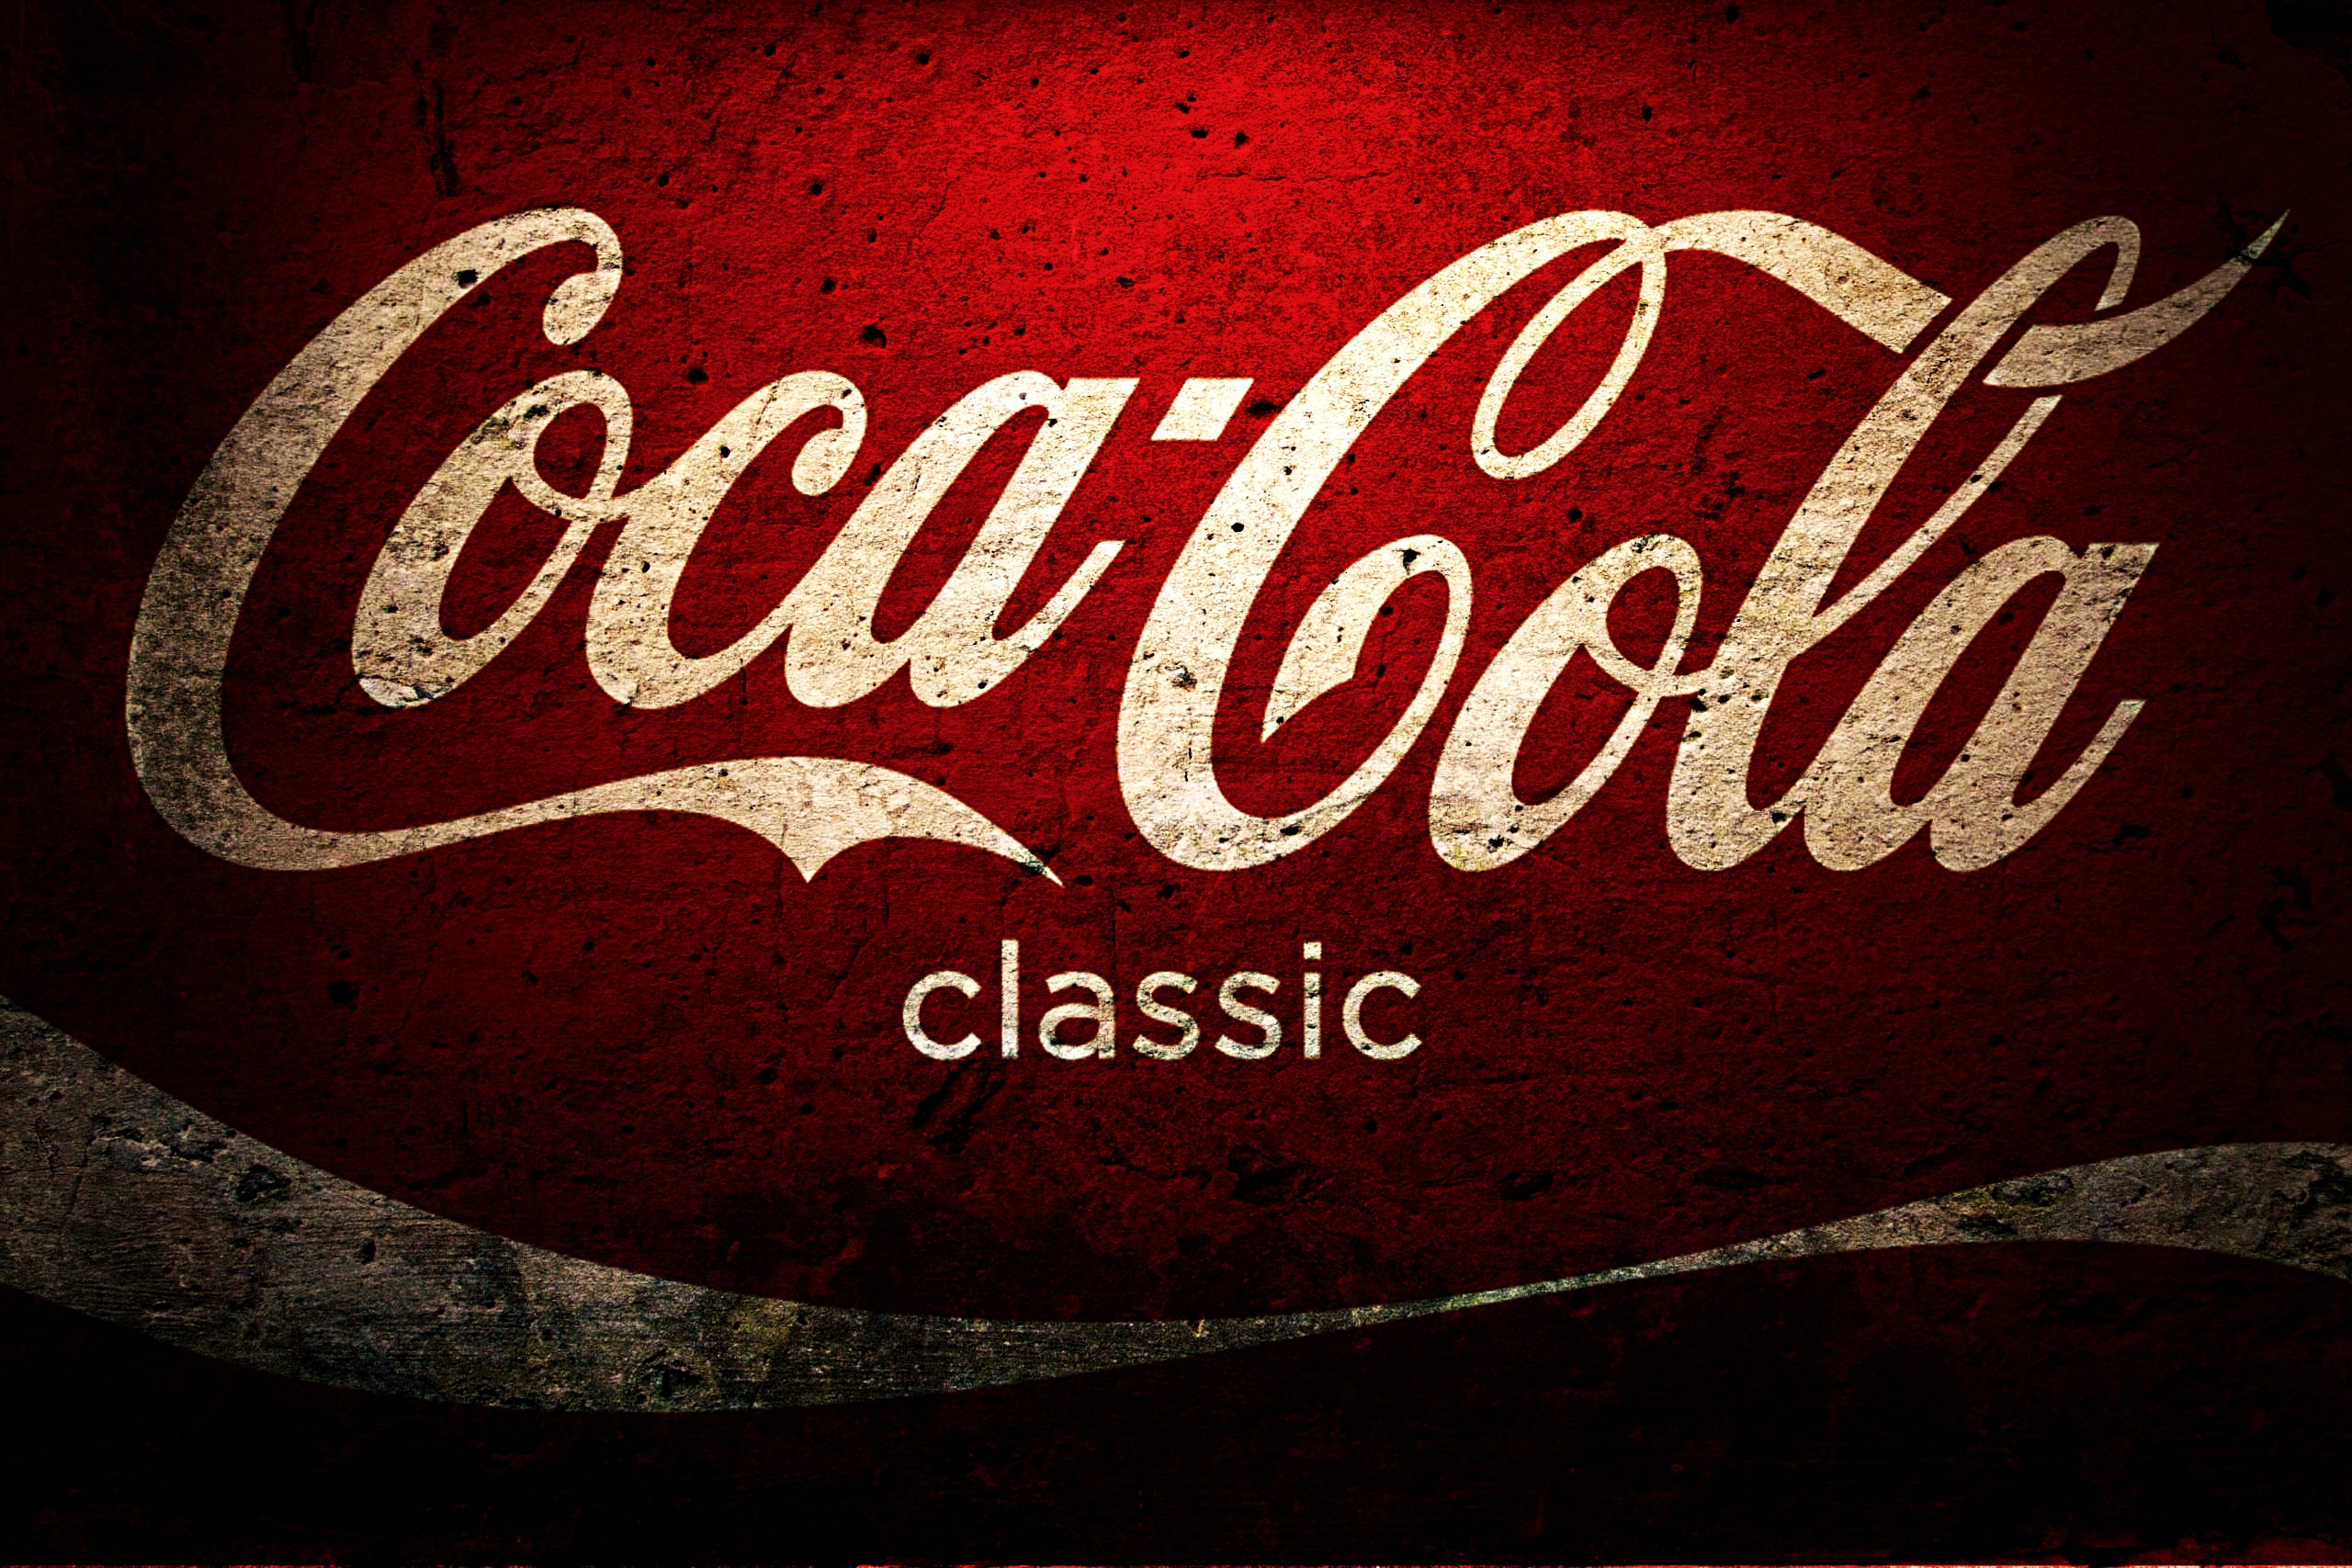 Coca Cola High Resolution Wallpapers (Rochelle Fielder, 2560x1707 px)